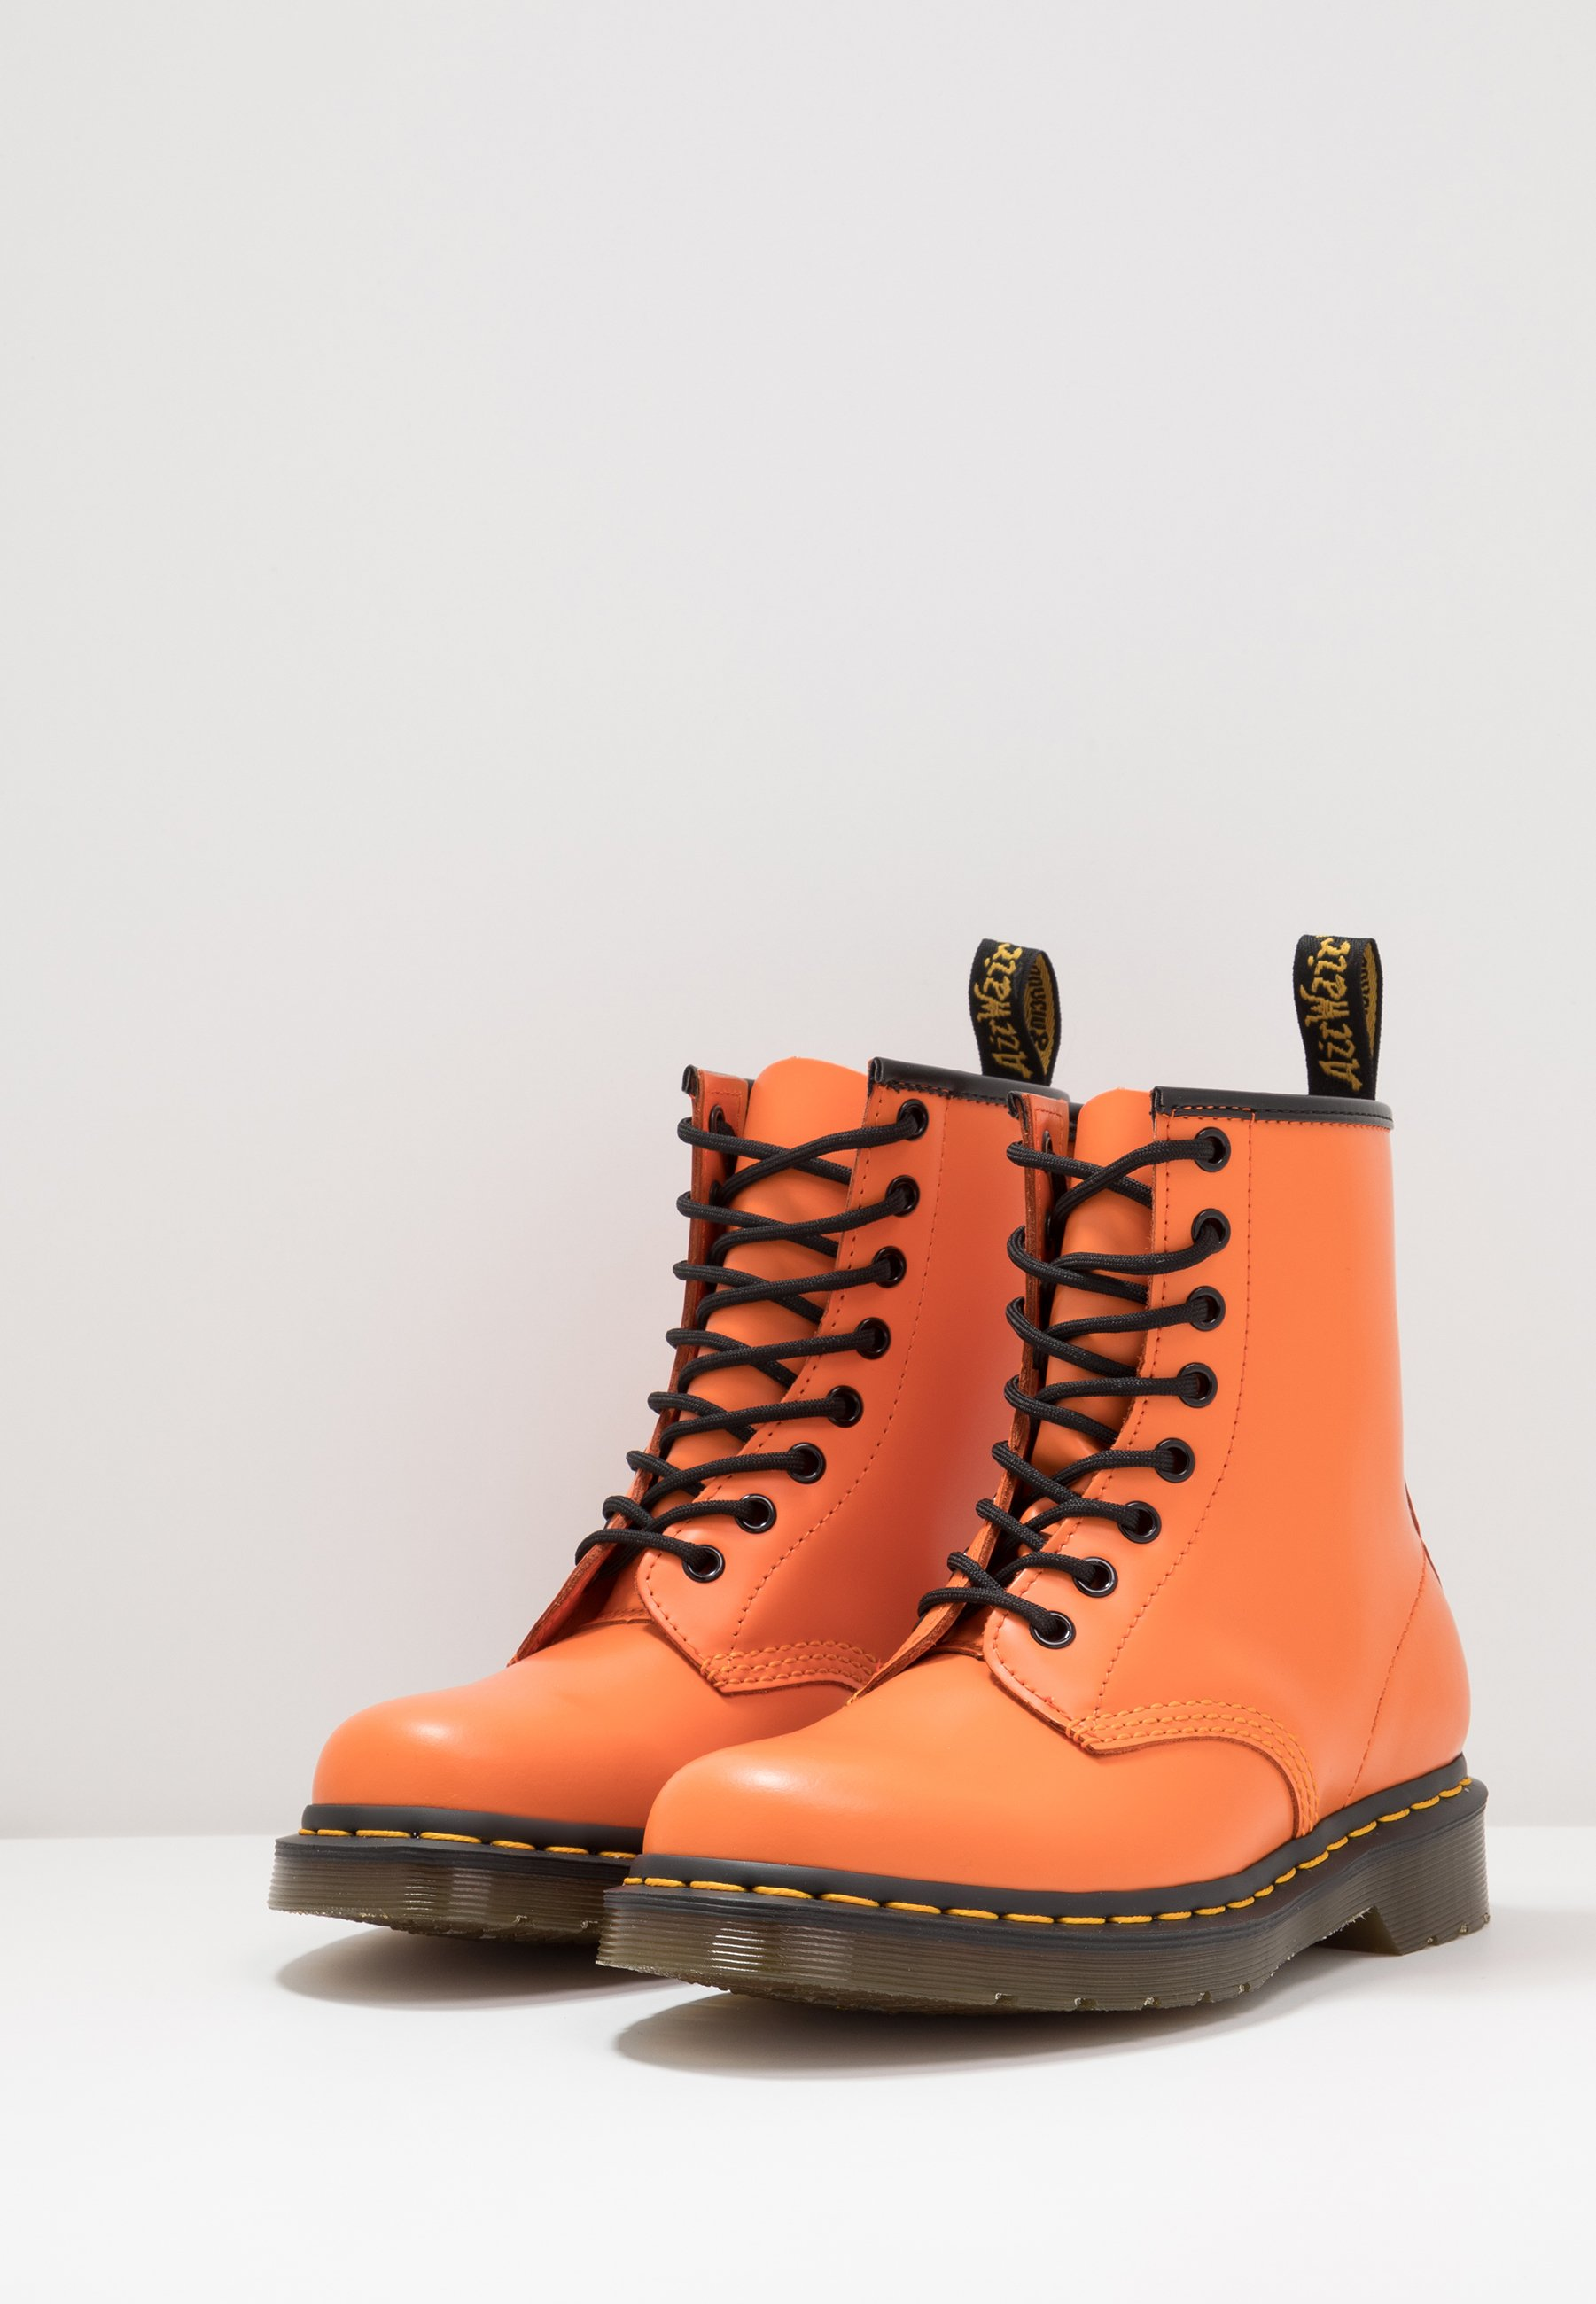 Dr. Martens 1460 Eye Boot - Lace-up Ankle Boots Orange Smooth